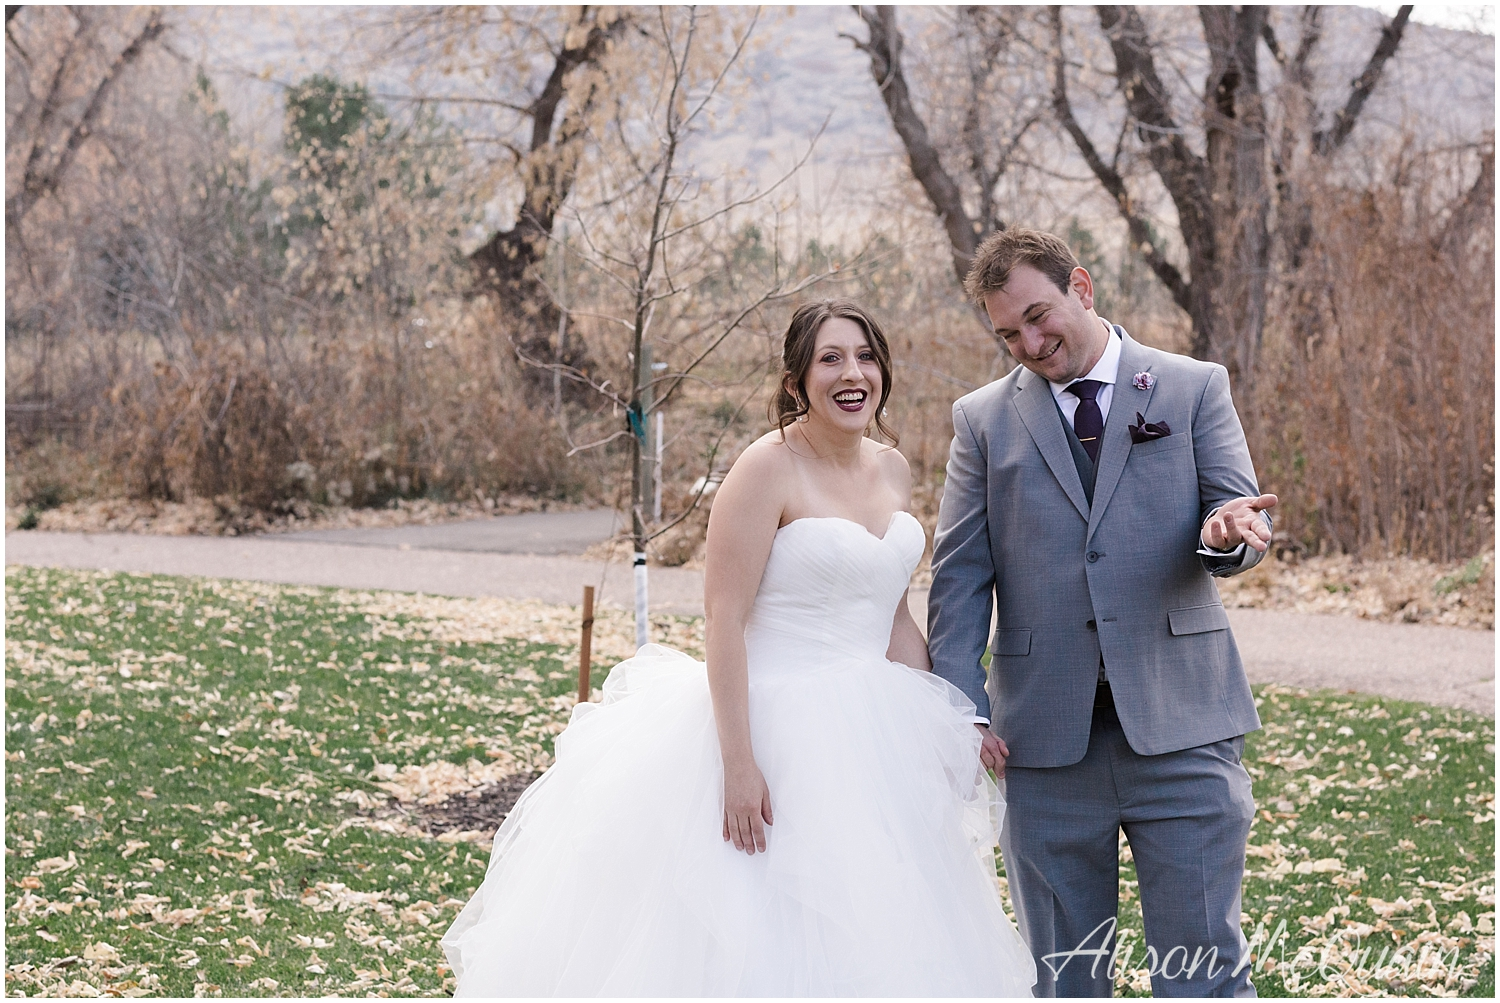 Zako_Wedding_ChatfieldFarm_Denver_Fall_2018_AlisonMcQuainPhotography_0009.jpg